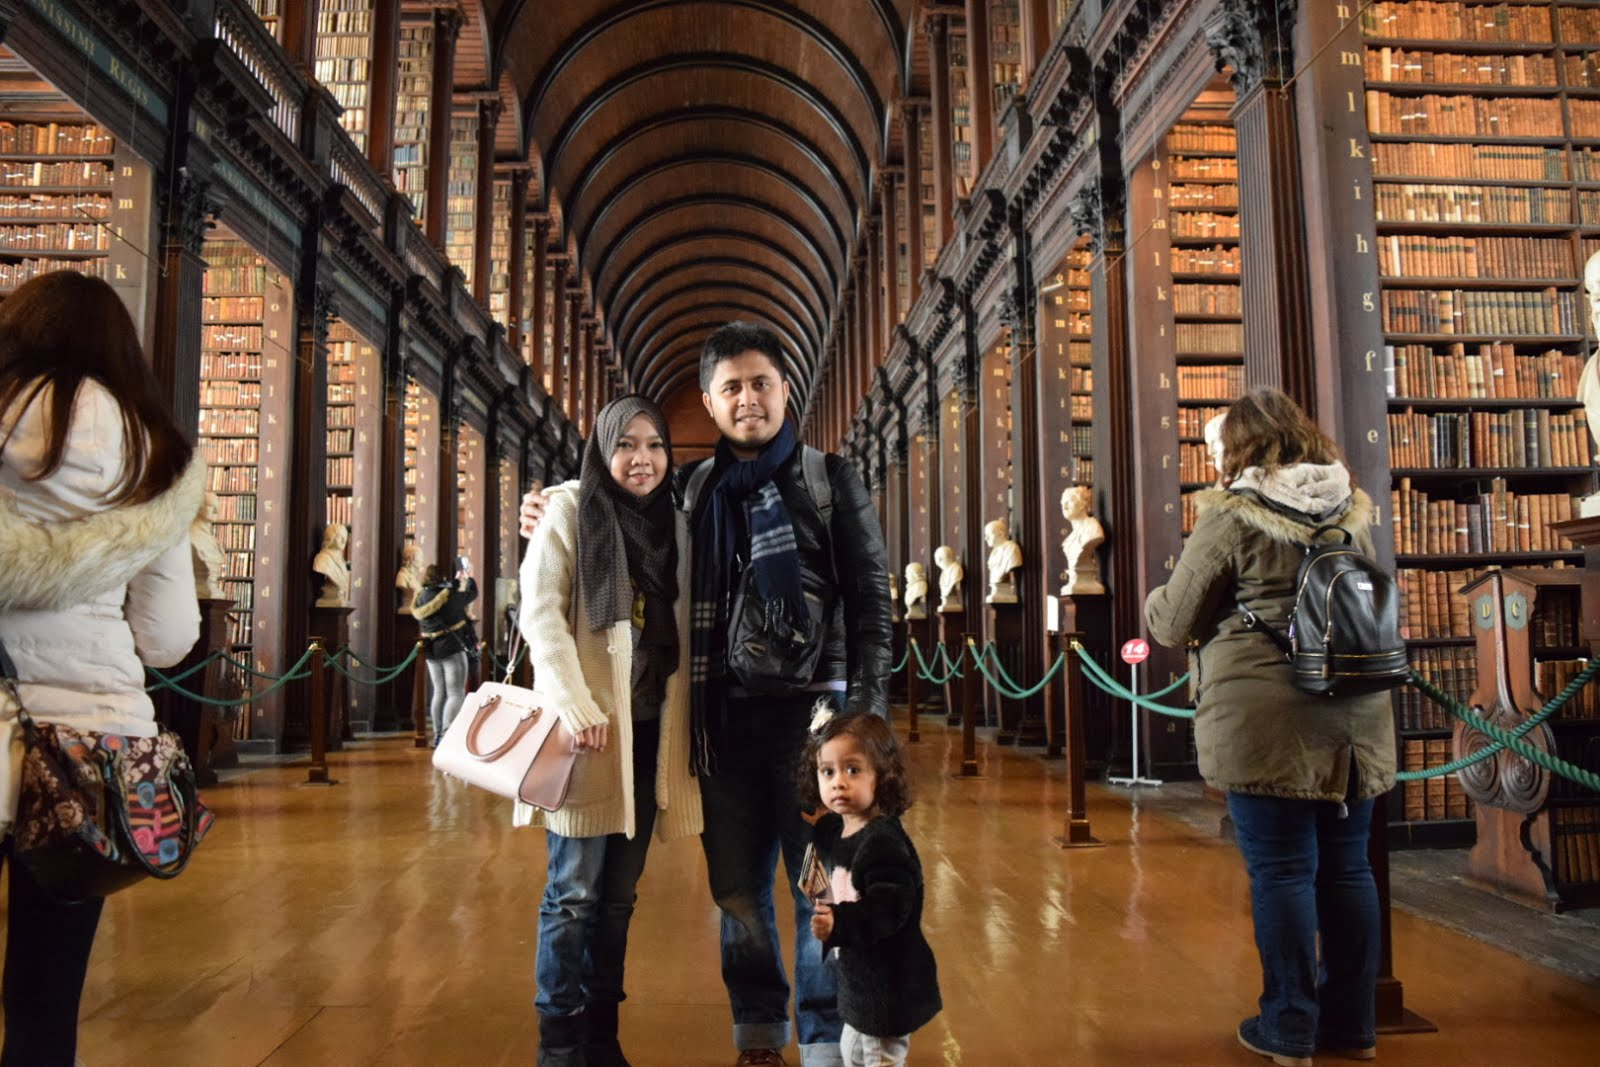 Book of Kells,Dublin  (March 2016)